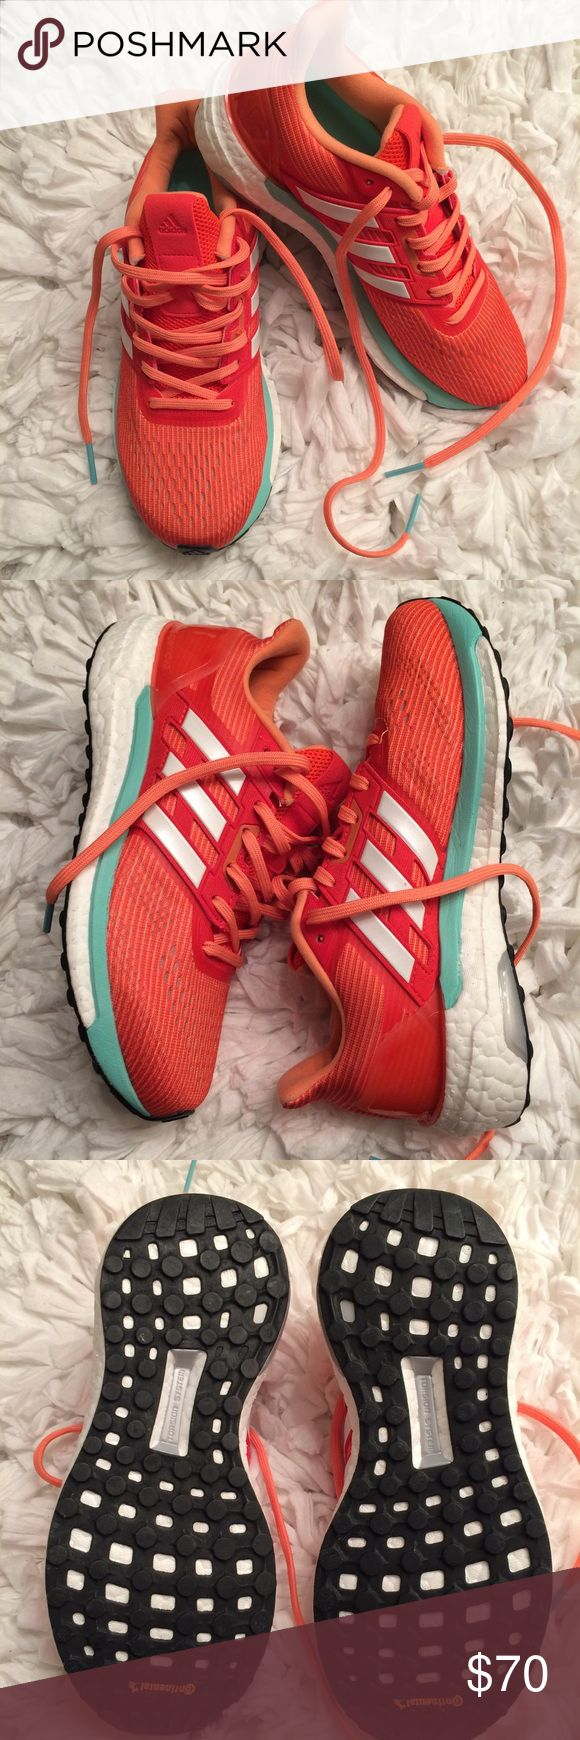 Adidas SuperNova Boost (Endless Energy) These shoes are bright, well cushioned and comfortable! This very popular shoe is the epitome of comfortable which means that they will be suitable for your workout as well as daily errands! These shoes are in excellent condition. adidas Shoes Sneakers